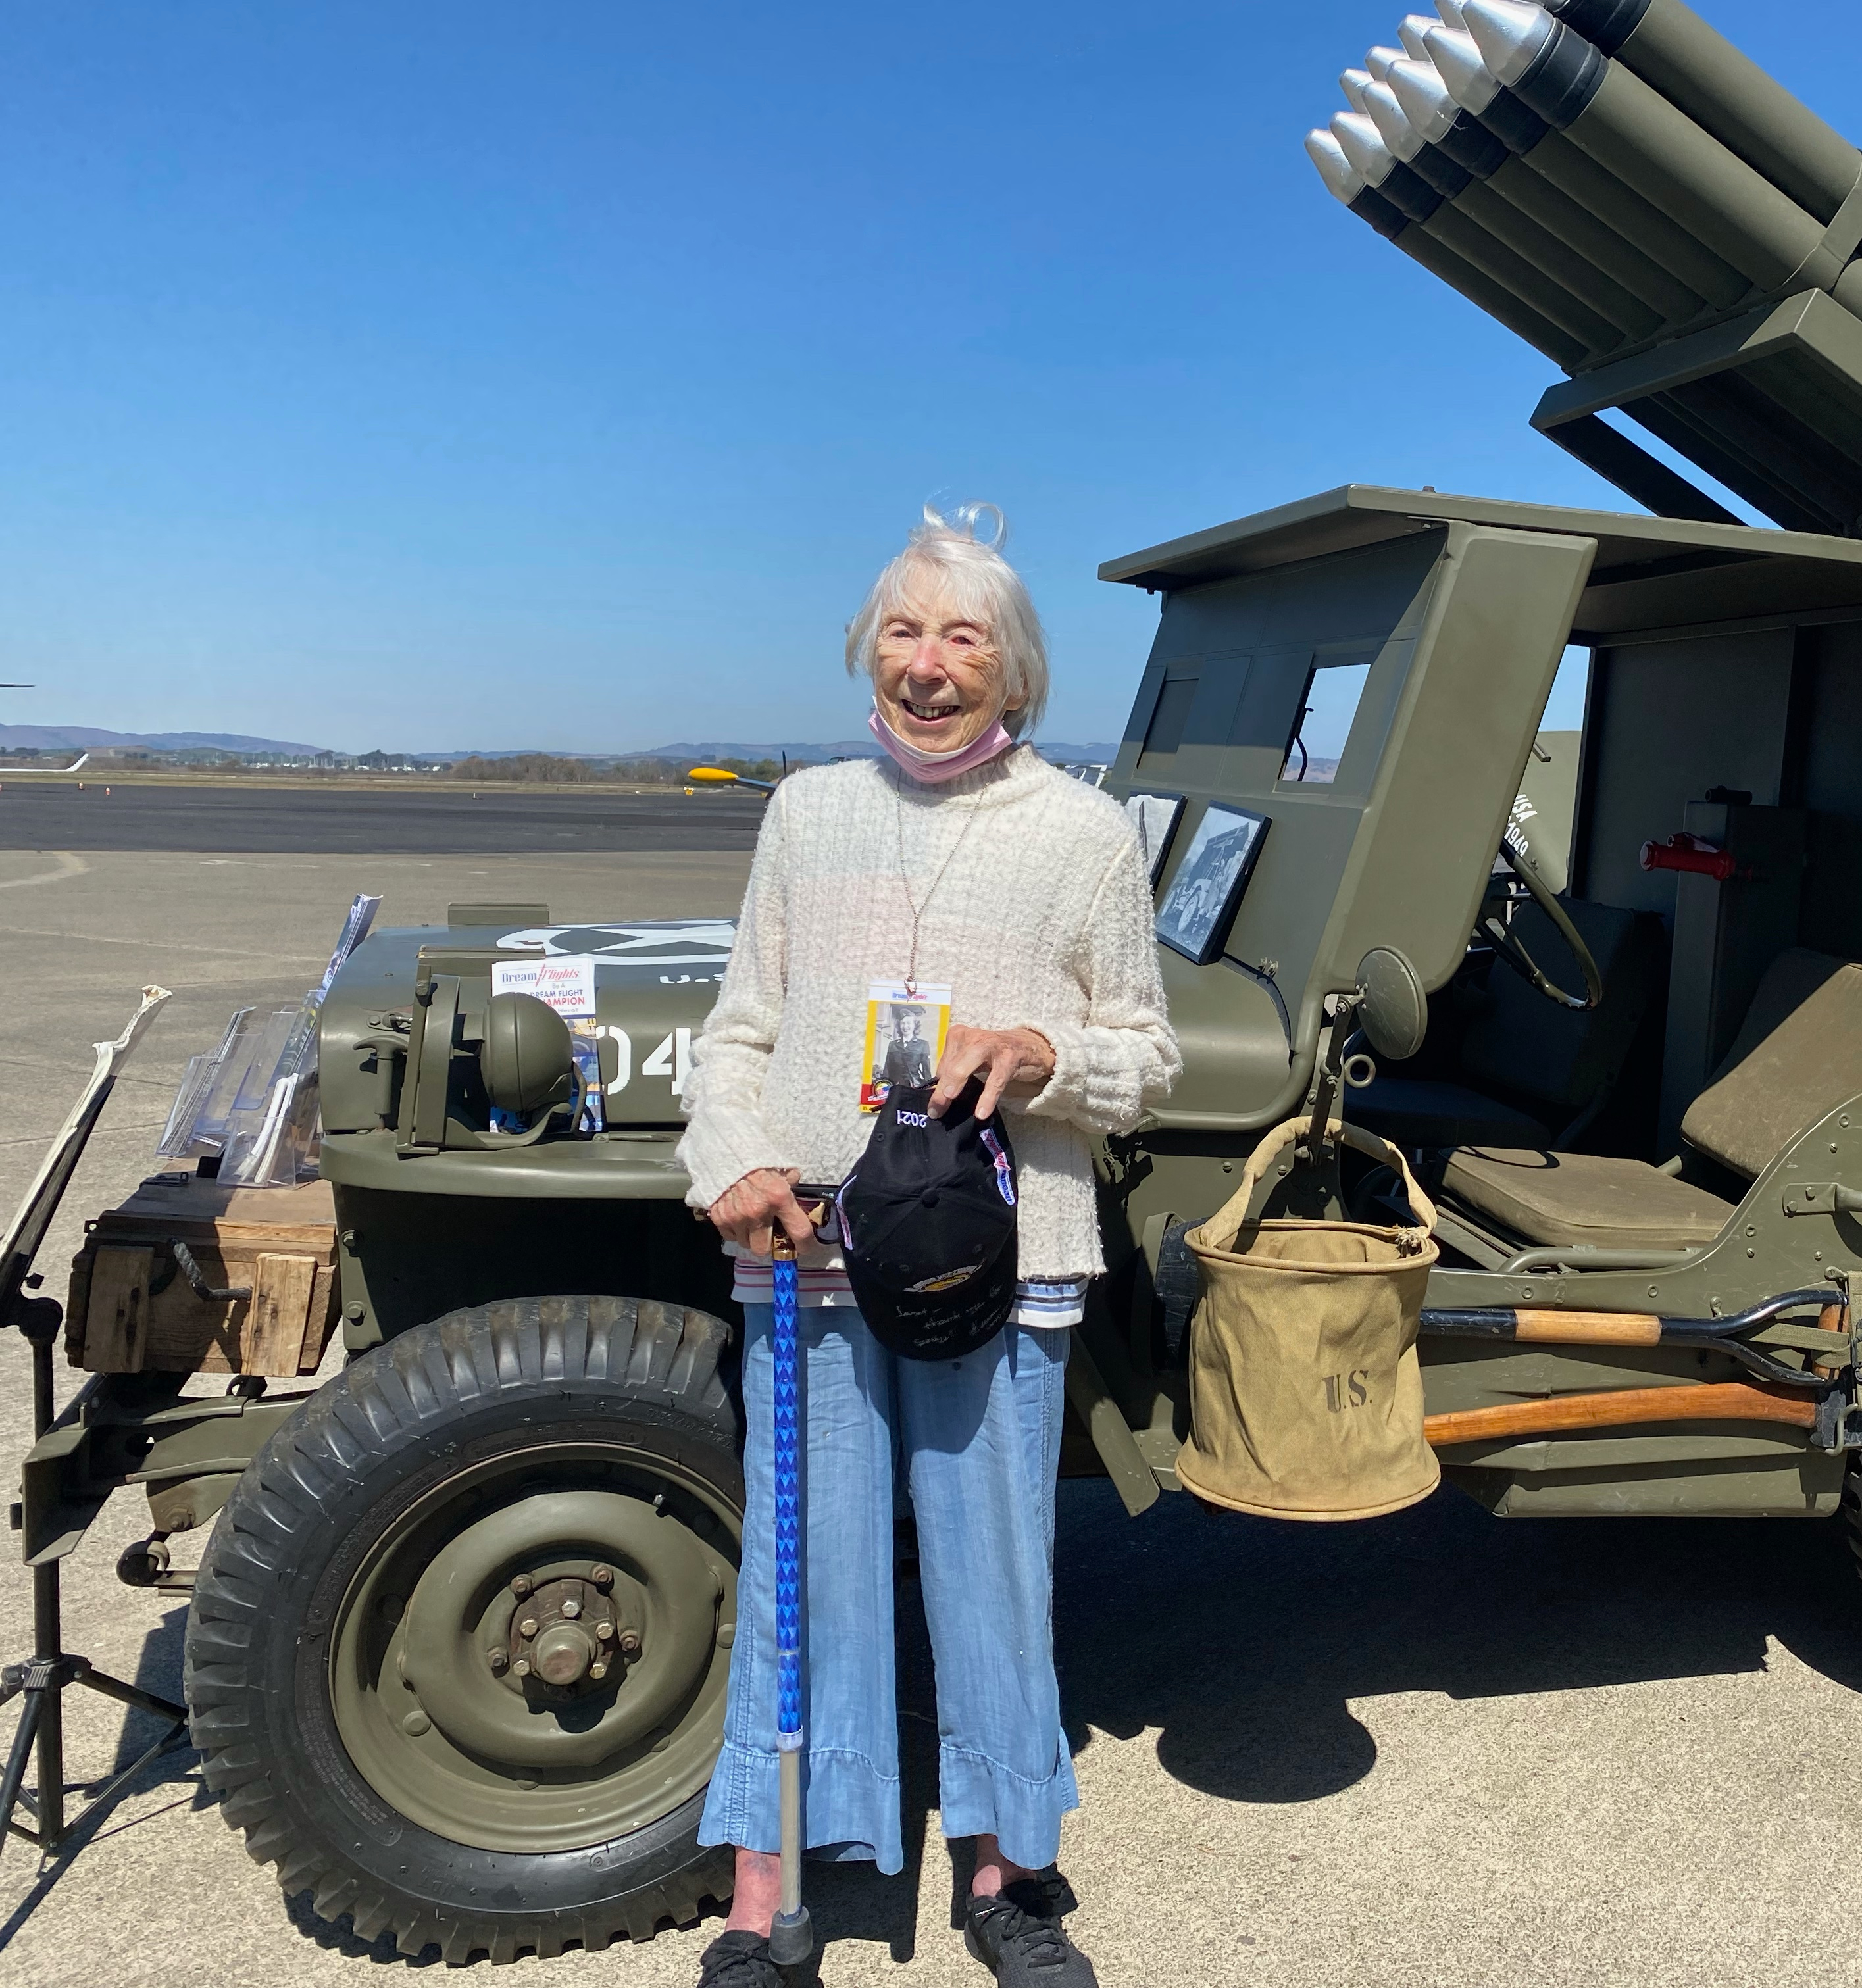 US Navy WAVE Janet Mull stands next to an old Army Jeep.